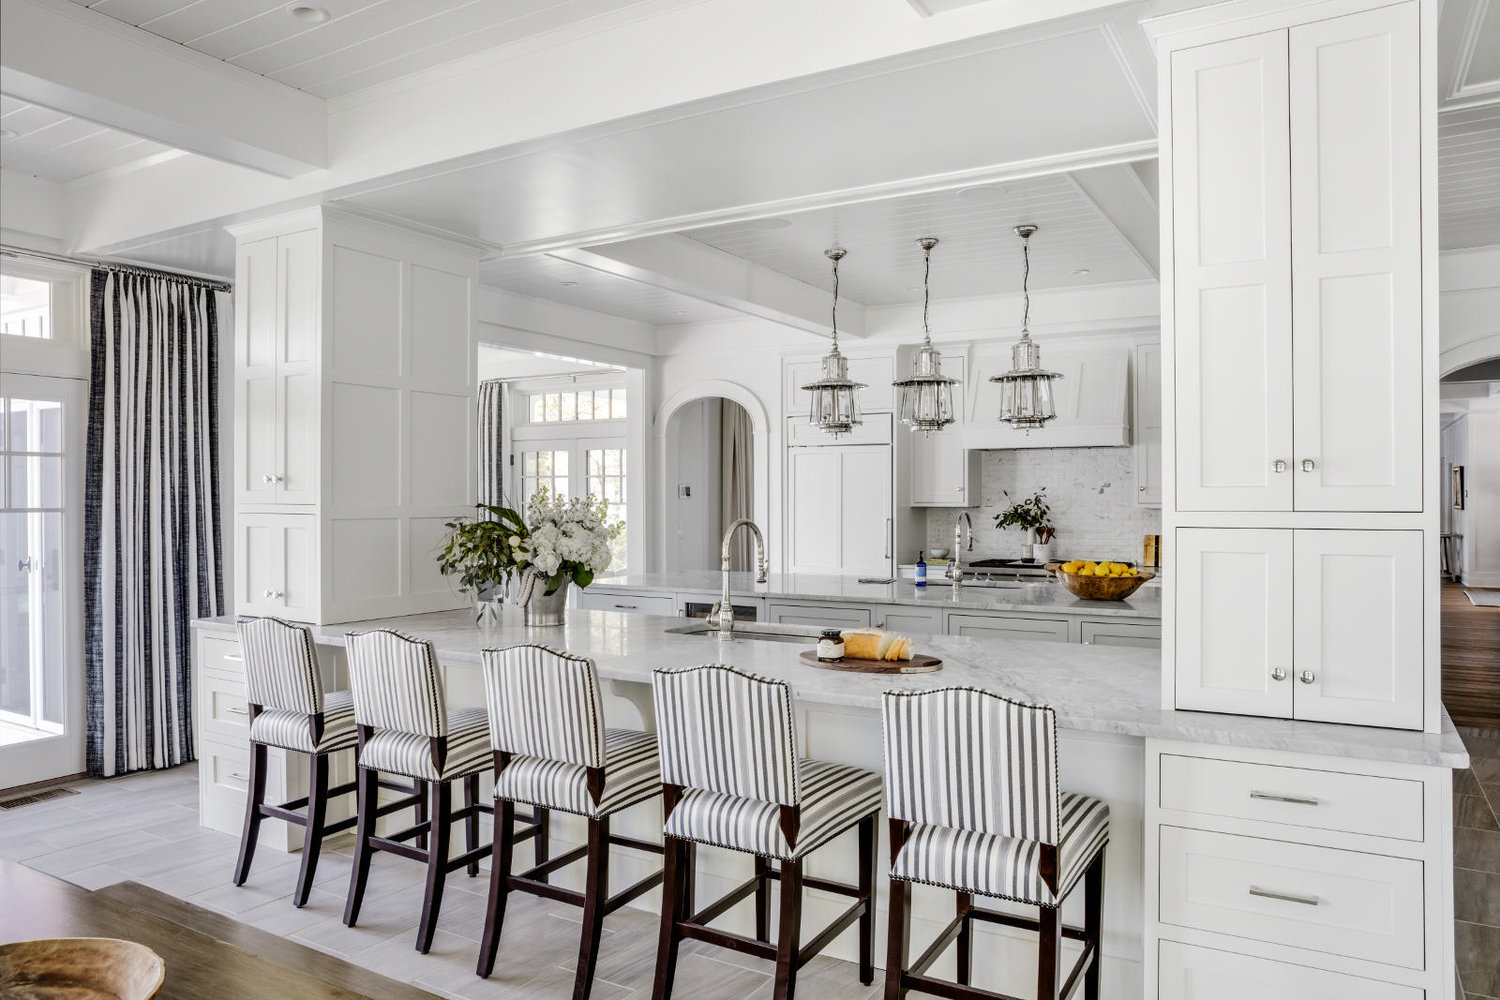 The pendant lights remind me of lighthouses..it is all in the details.